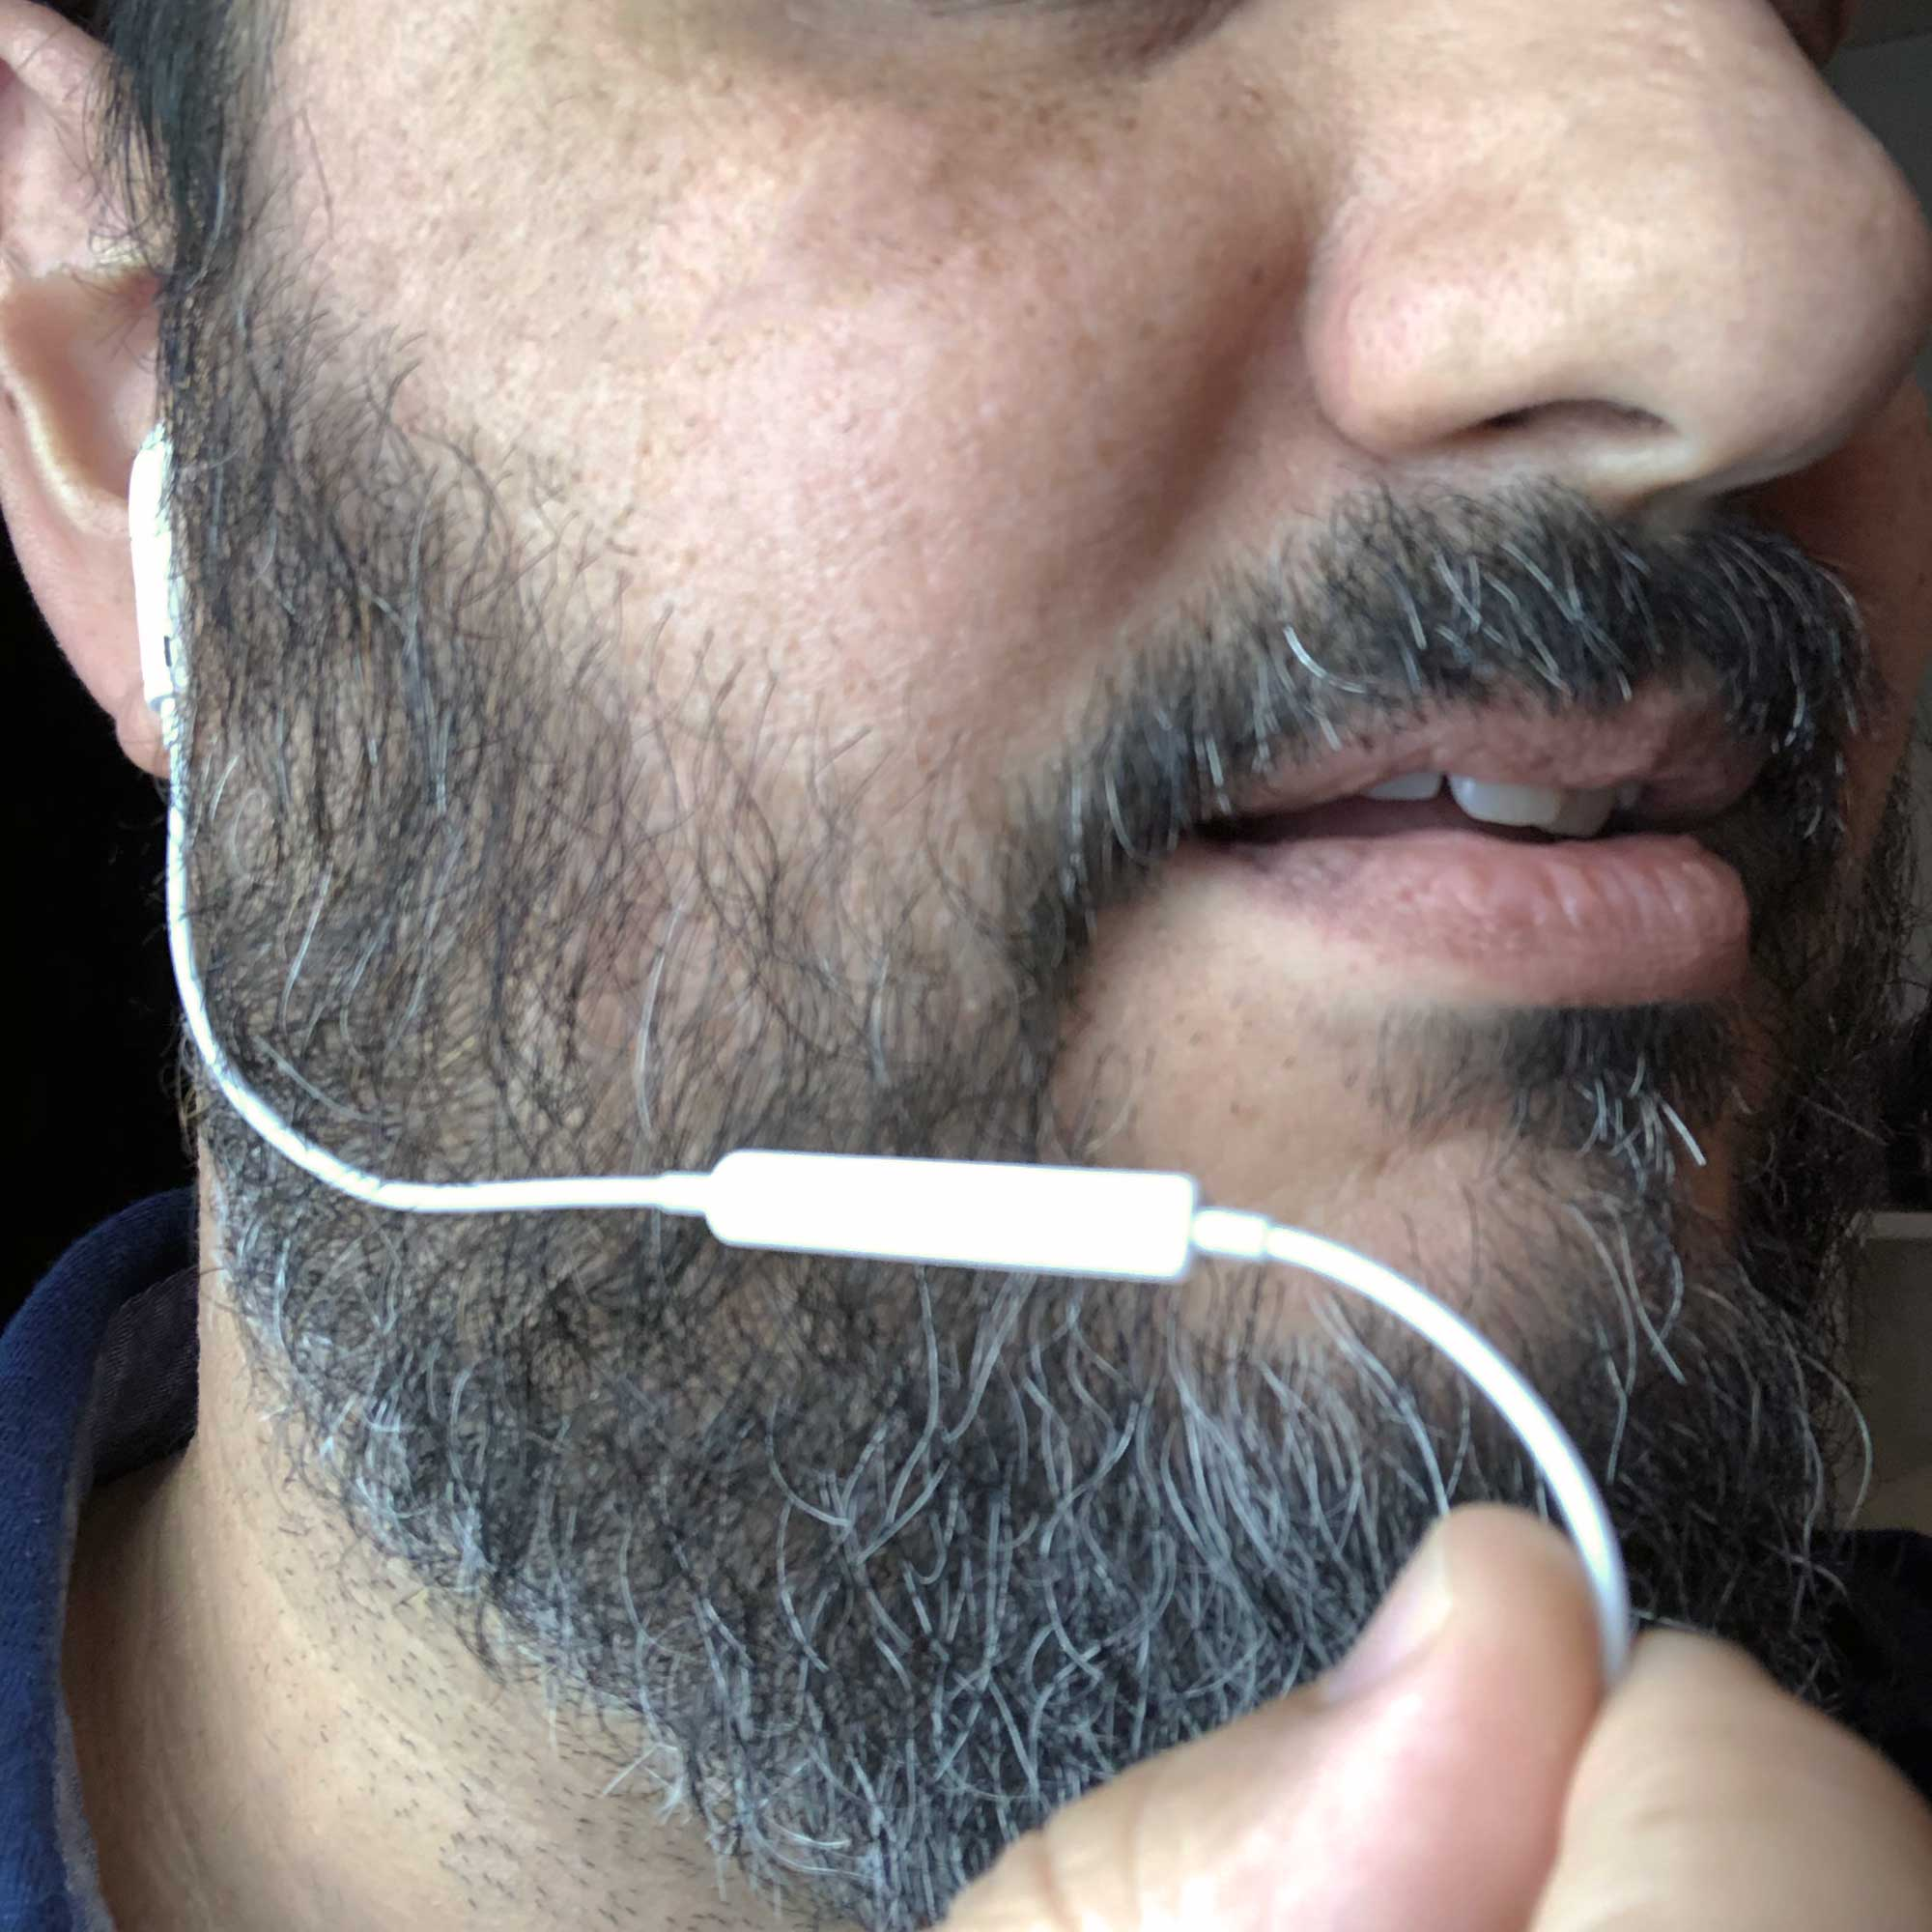 Hold the earbud cable below the microphone up near your cheek to the side of your mouth to get a better sound while preventing breath noise.